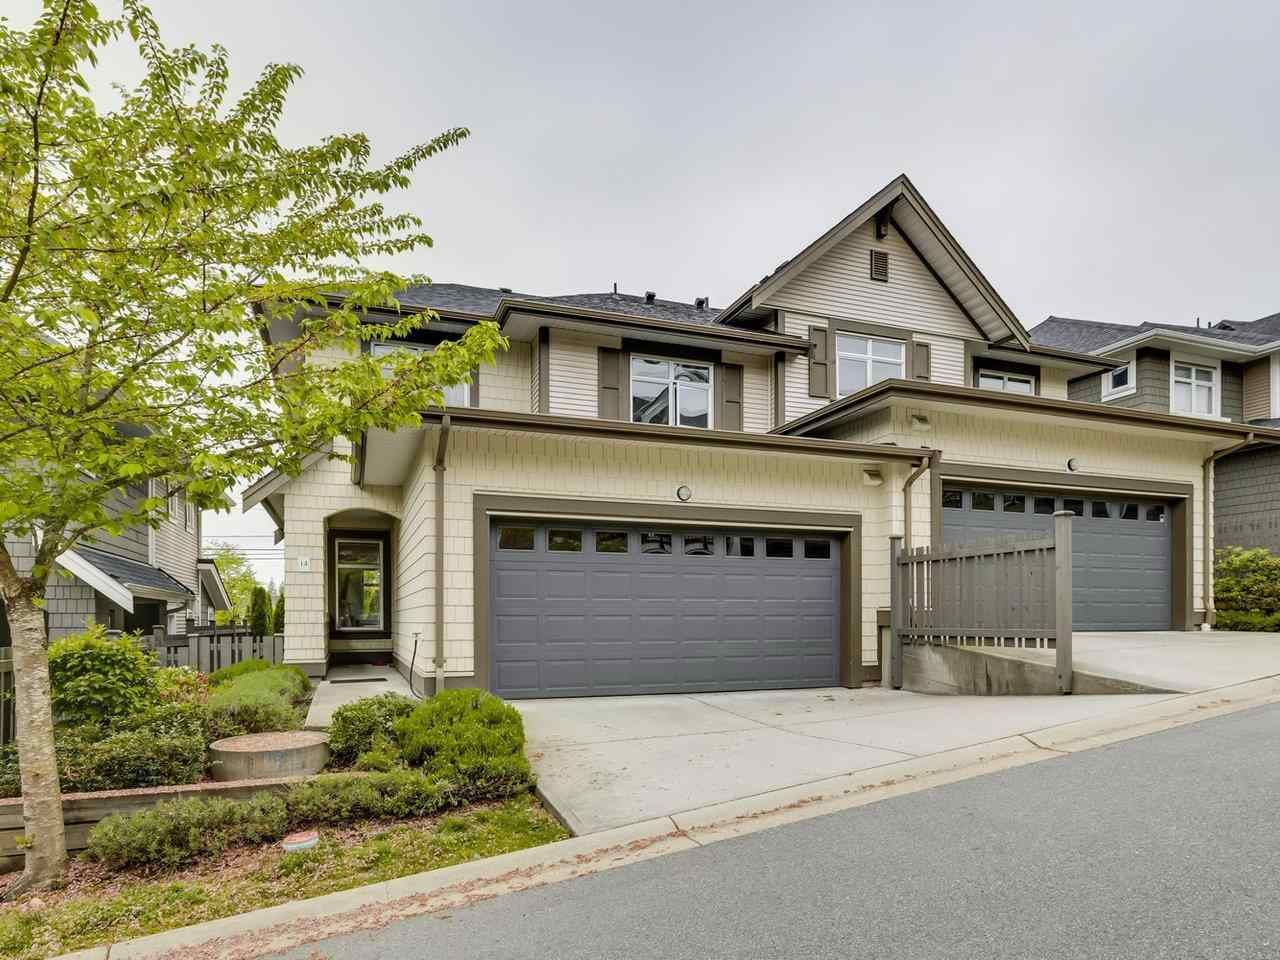 """Main Photo: 14 3400 DEVONSHIRE Avenue in Coquitlam: Burke Mountain Townhouse for sale in """"Colborne Lane"""" : MLS®# R2571443"""